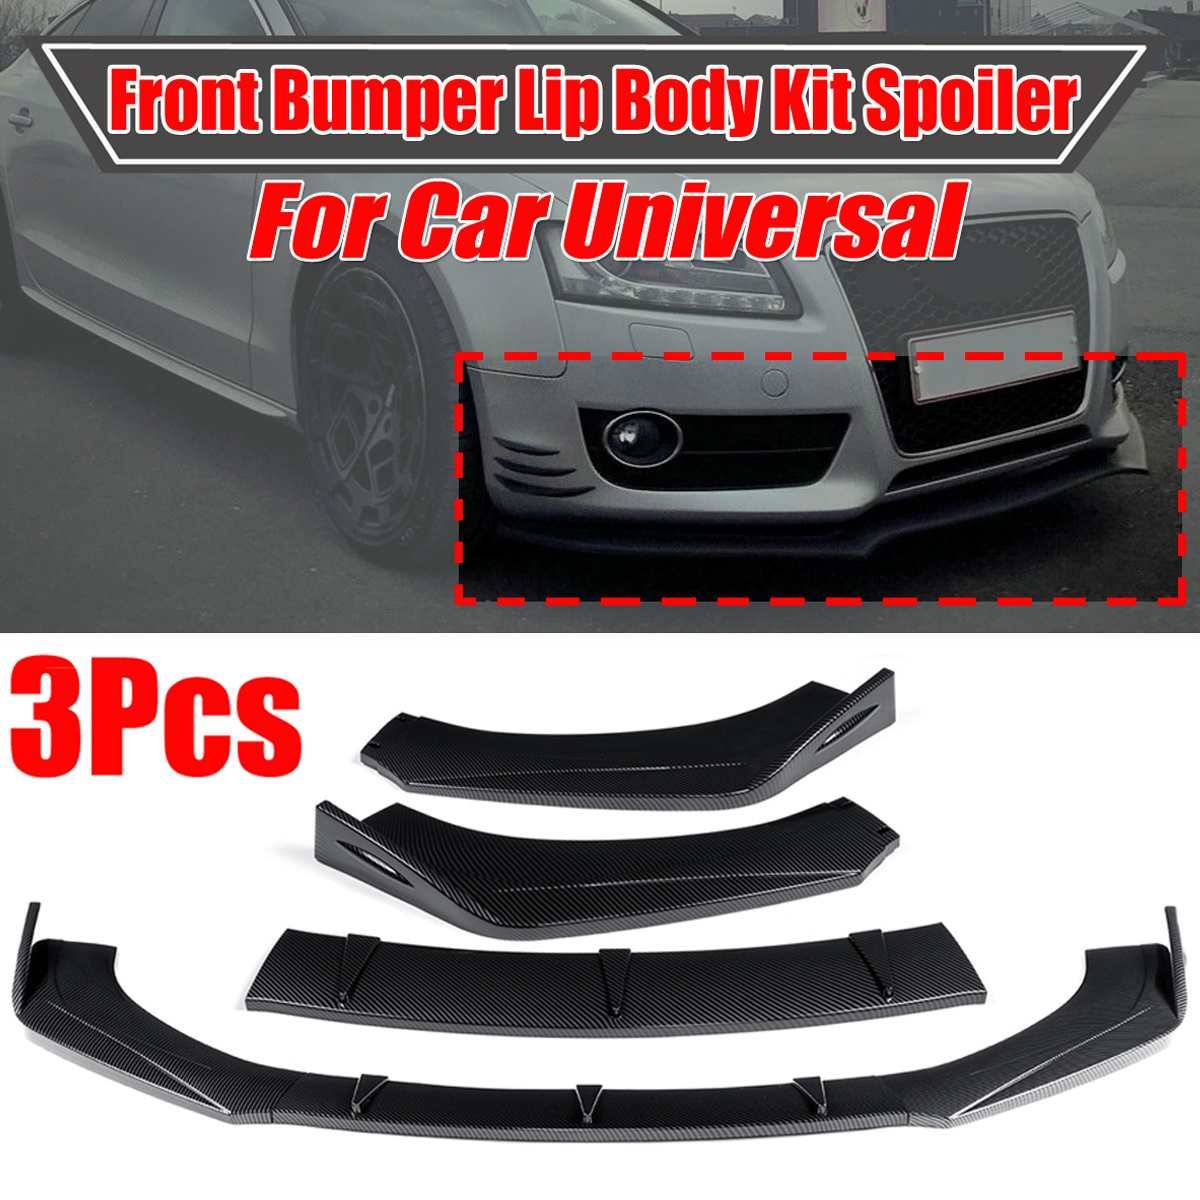 New Universal Car Front Bumper Splitter Lip Body Kit Spoiler Diffuser For Audi A5 Sline S5 RS5 09-16 For BMW For Benz For Mazad